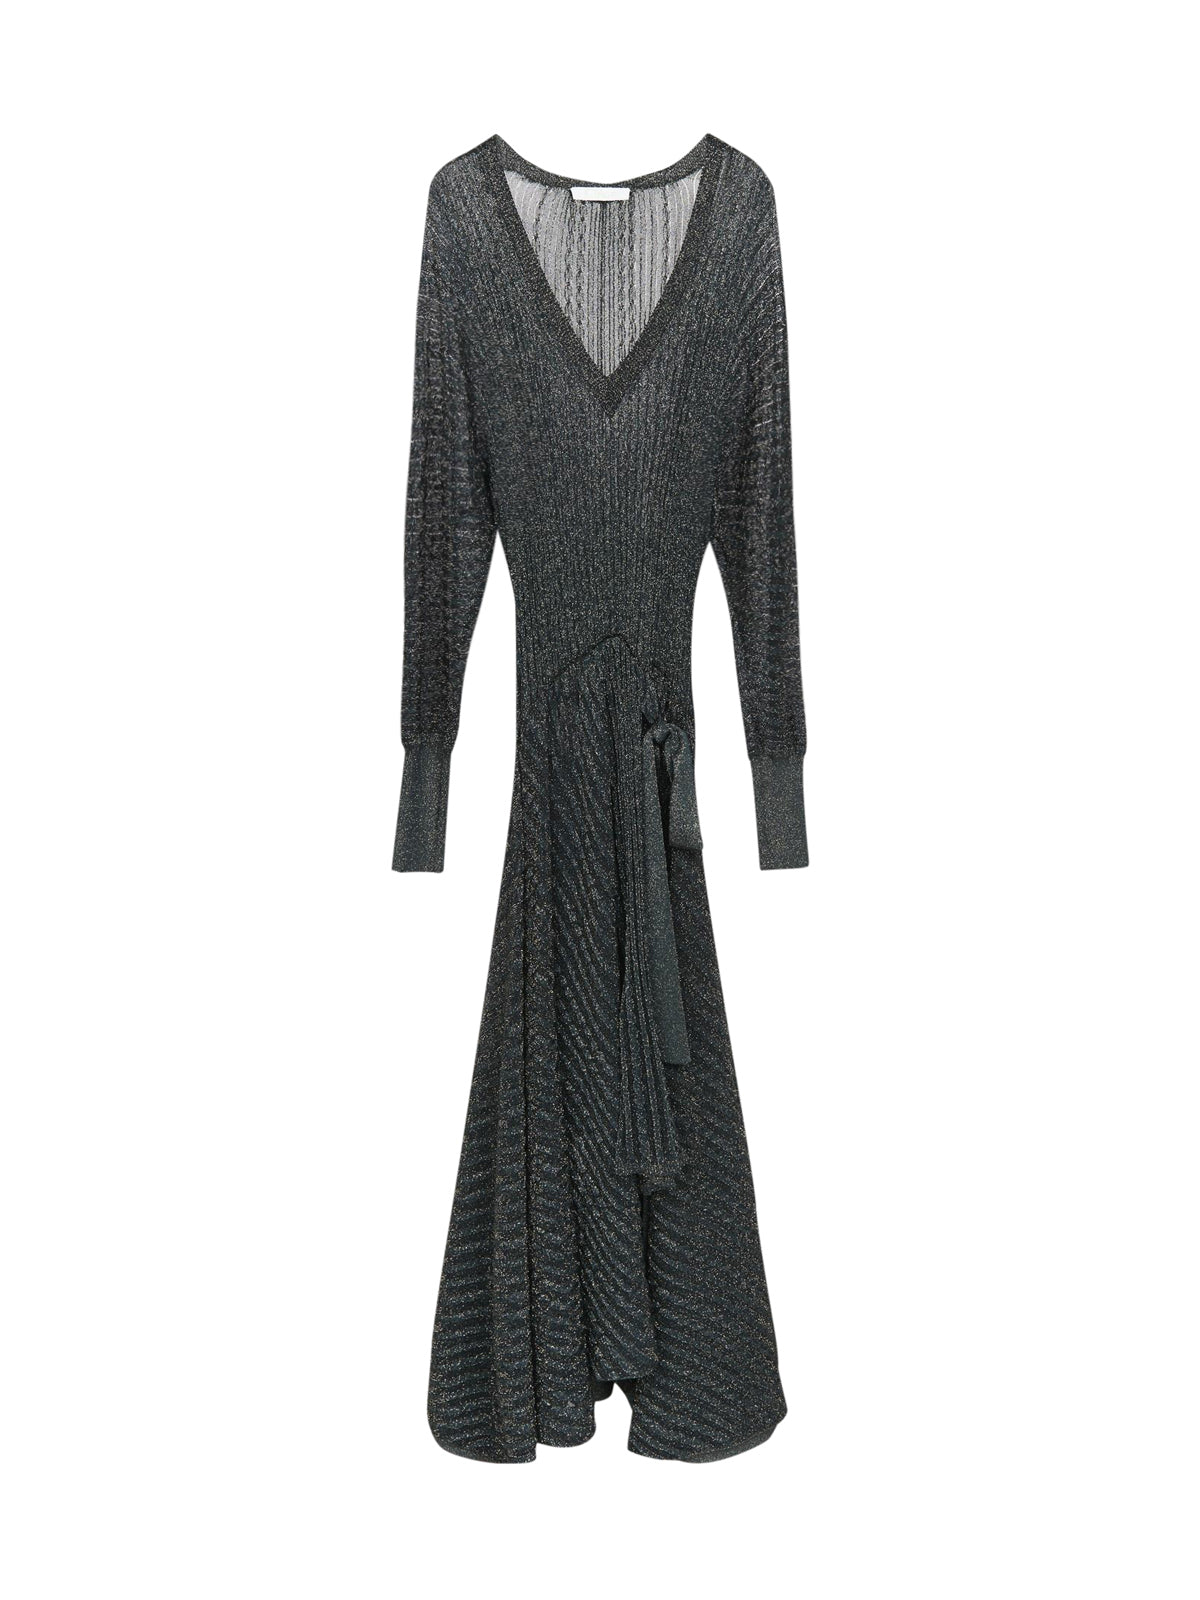 Long-sleeved evening dress with V-neck in lurex knit